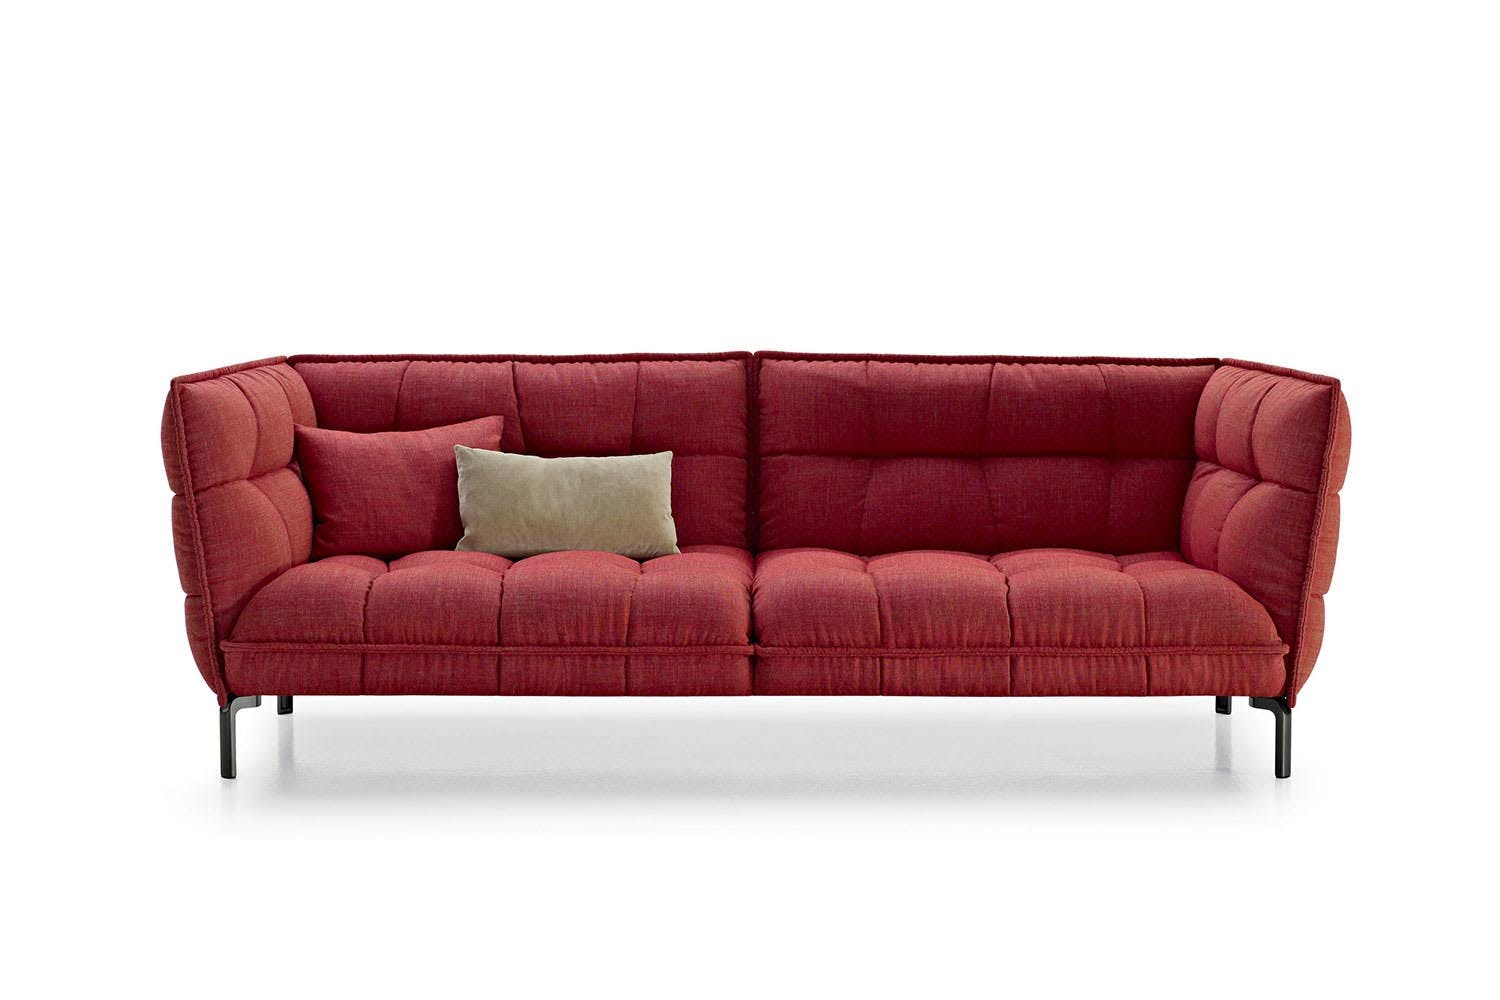 Husk Sofa By Patricia Urquiola For B B Italia Space Furniture